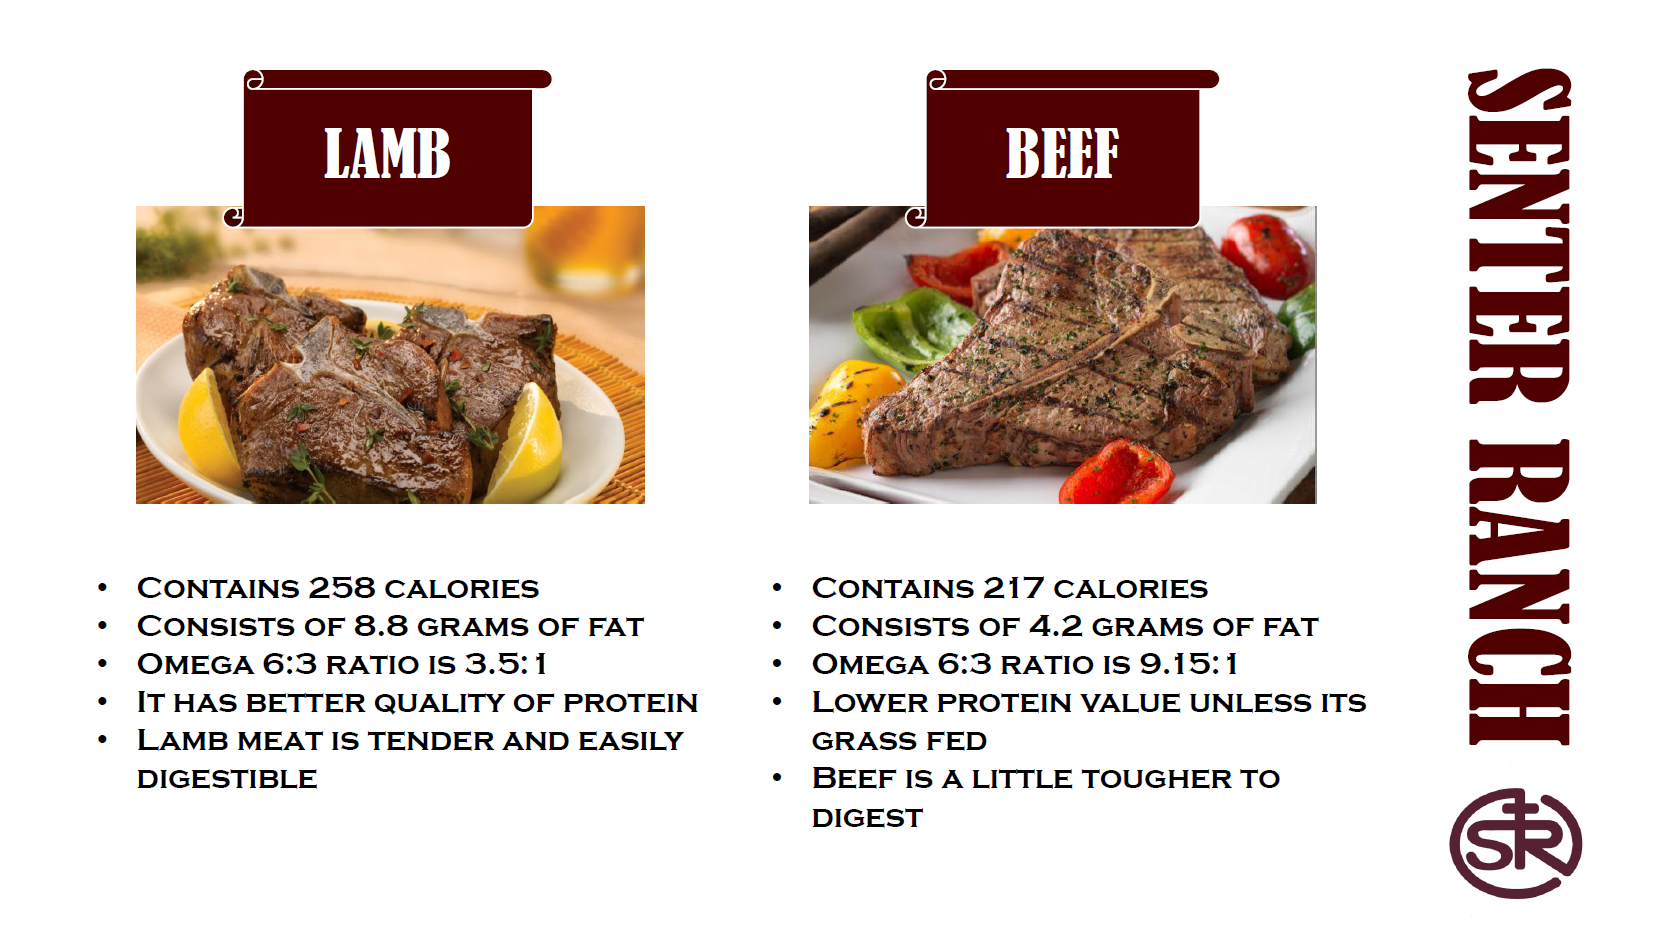 Lamb vs Beef.PNG